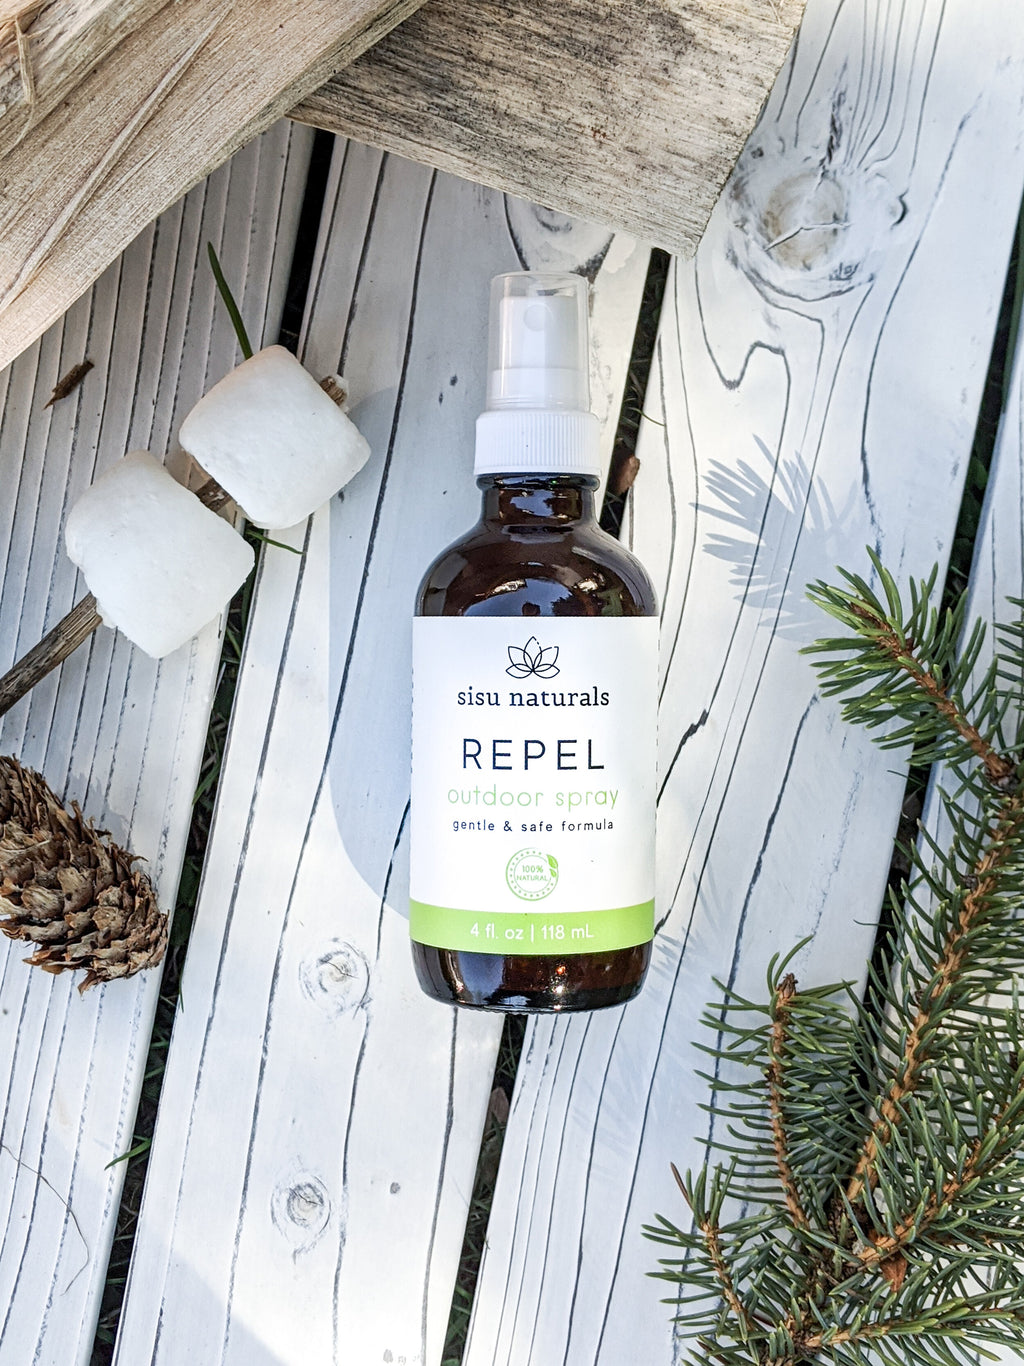 Natural outdoor spray to protect against nature without harmful ingredients, while keeping your skin moisturized with aloe juice. Safe for the environment.